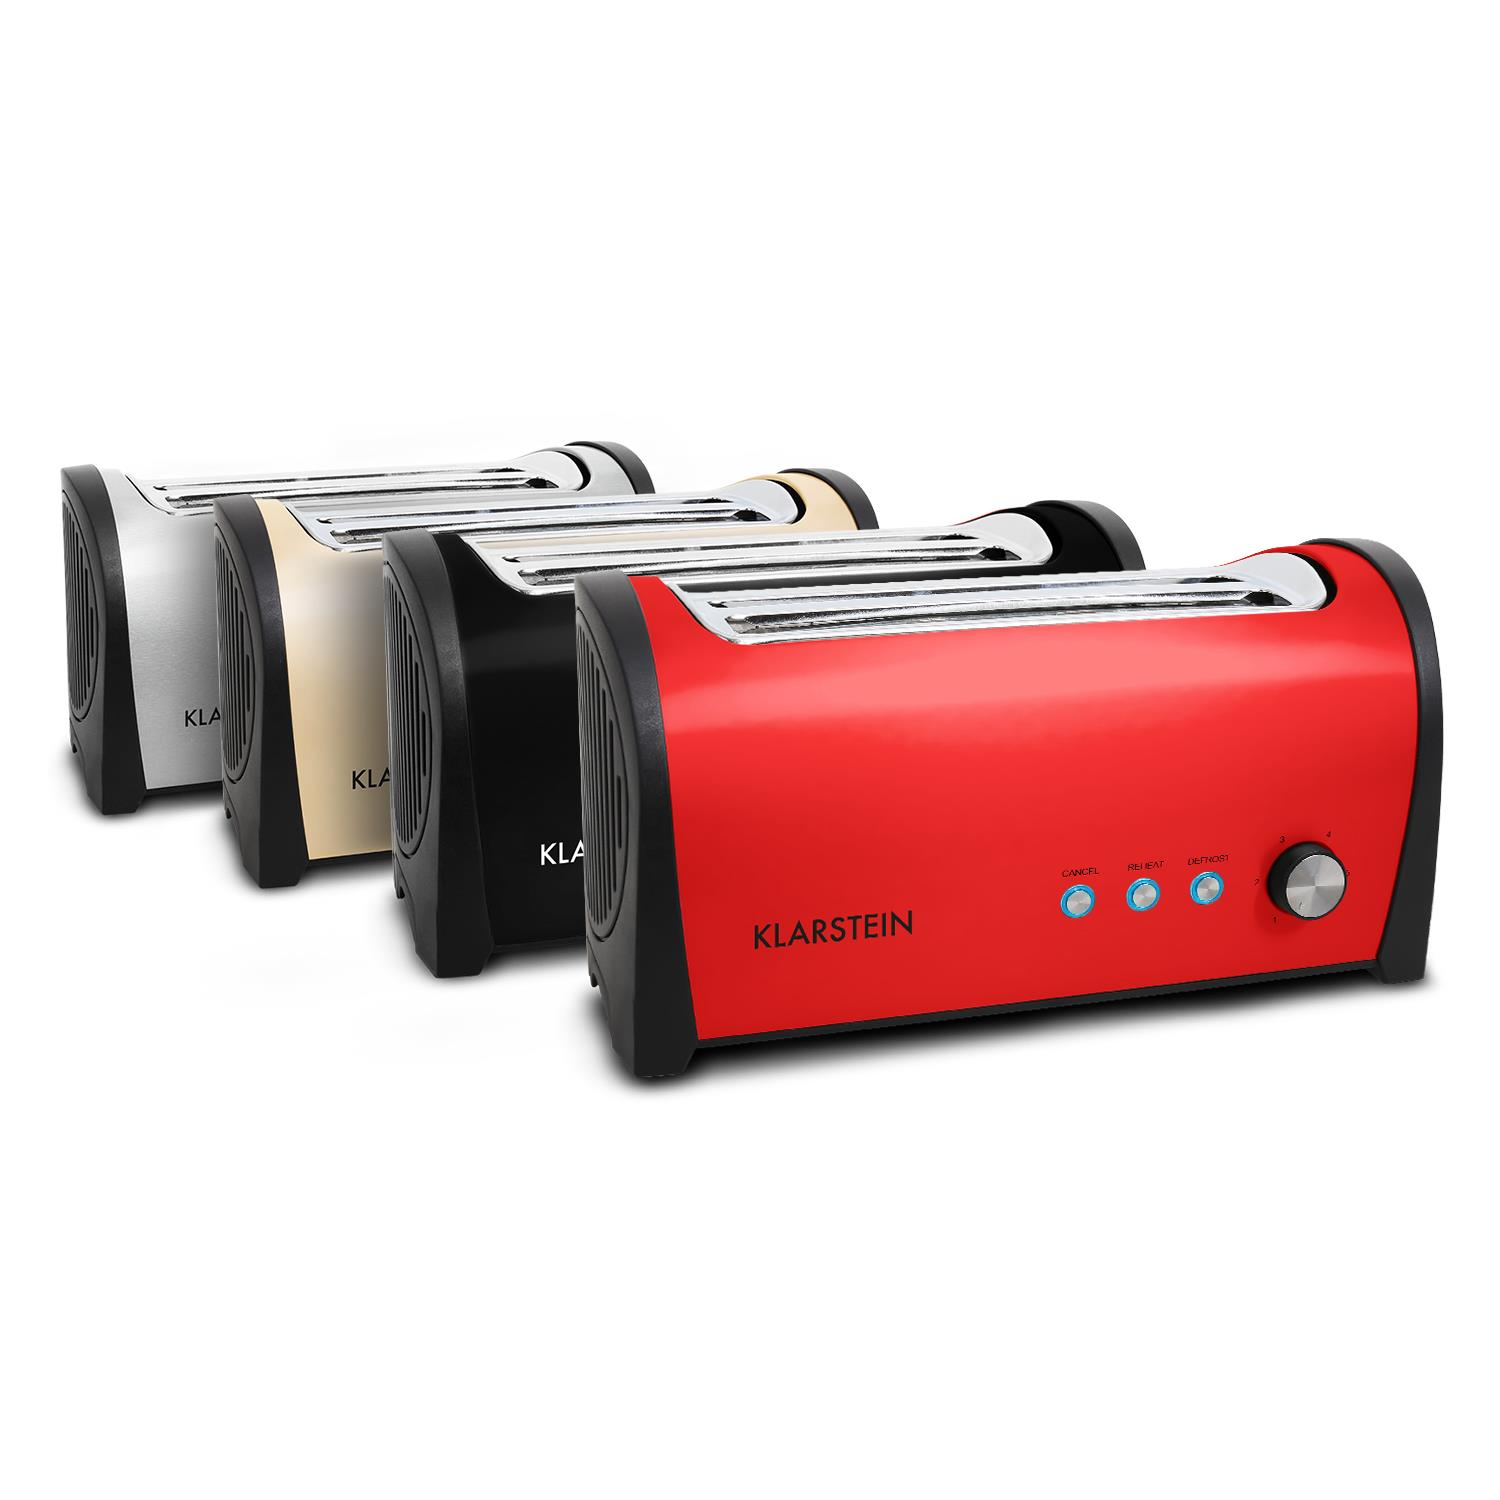 OCCASION-GRILLE-PAIN-4-TRANCHES-KLARSTEIN-TOASTER-LARGE-FENTE-ROUGE-1400W